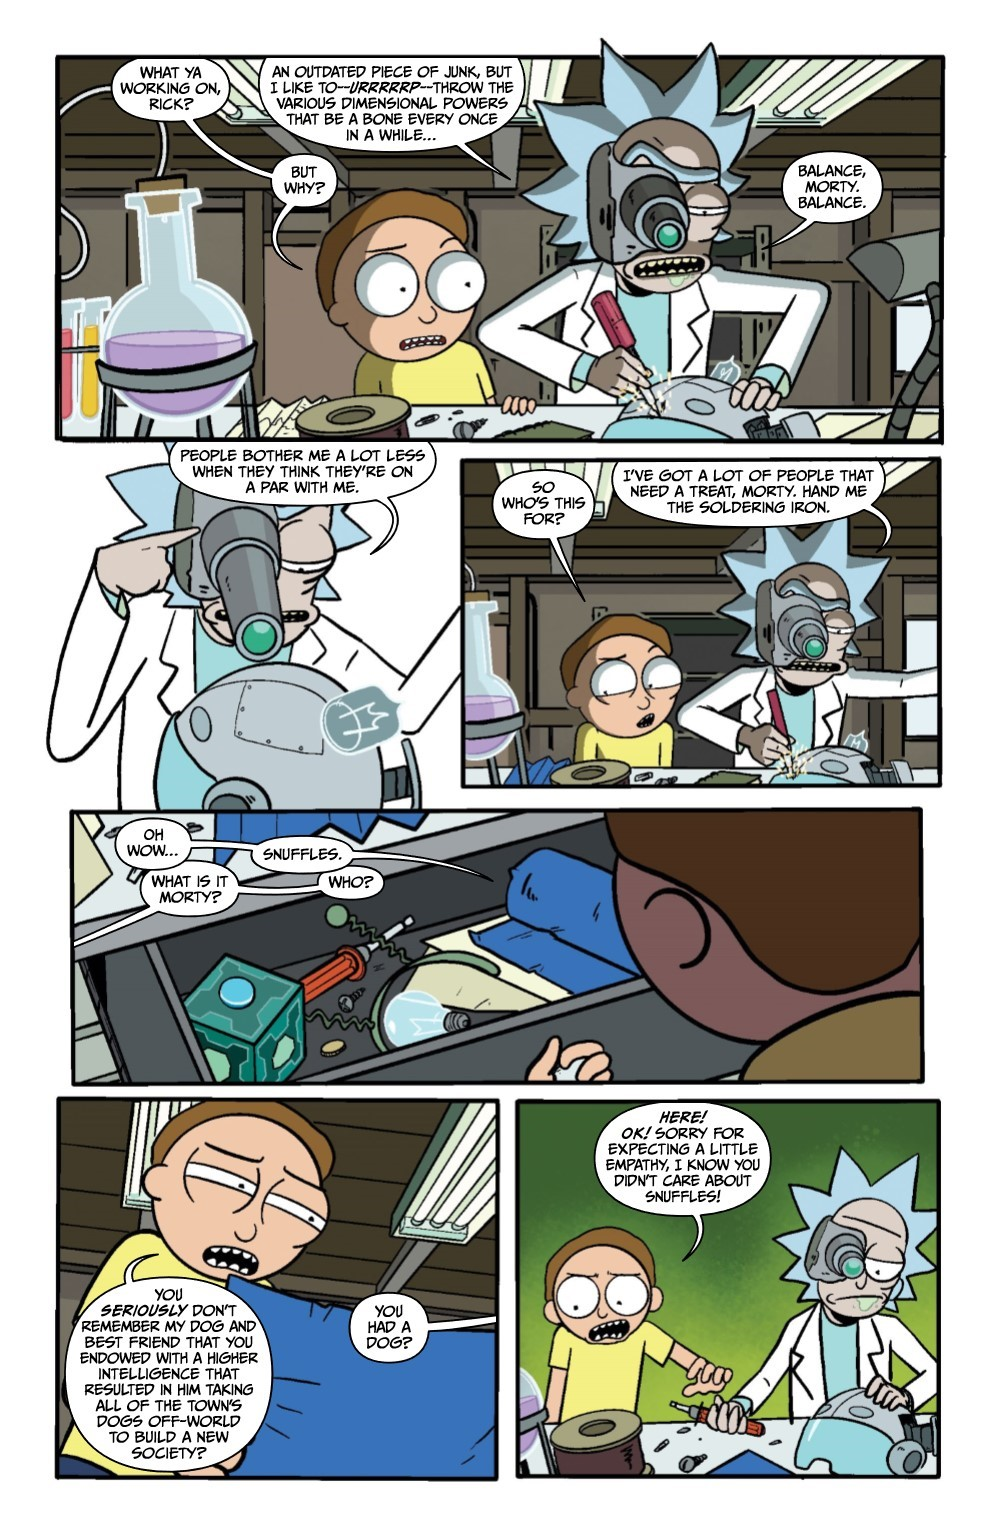 RM-PRES-SNUFFLES-1-REFERENCE-07 ComicList Previews: RICK AND MORTY PRESENTS SNUFFLES GOES TO WAR #1